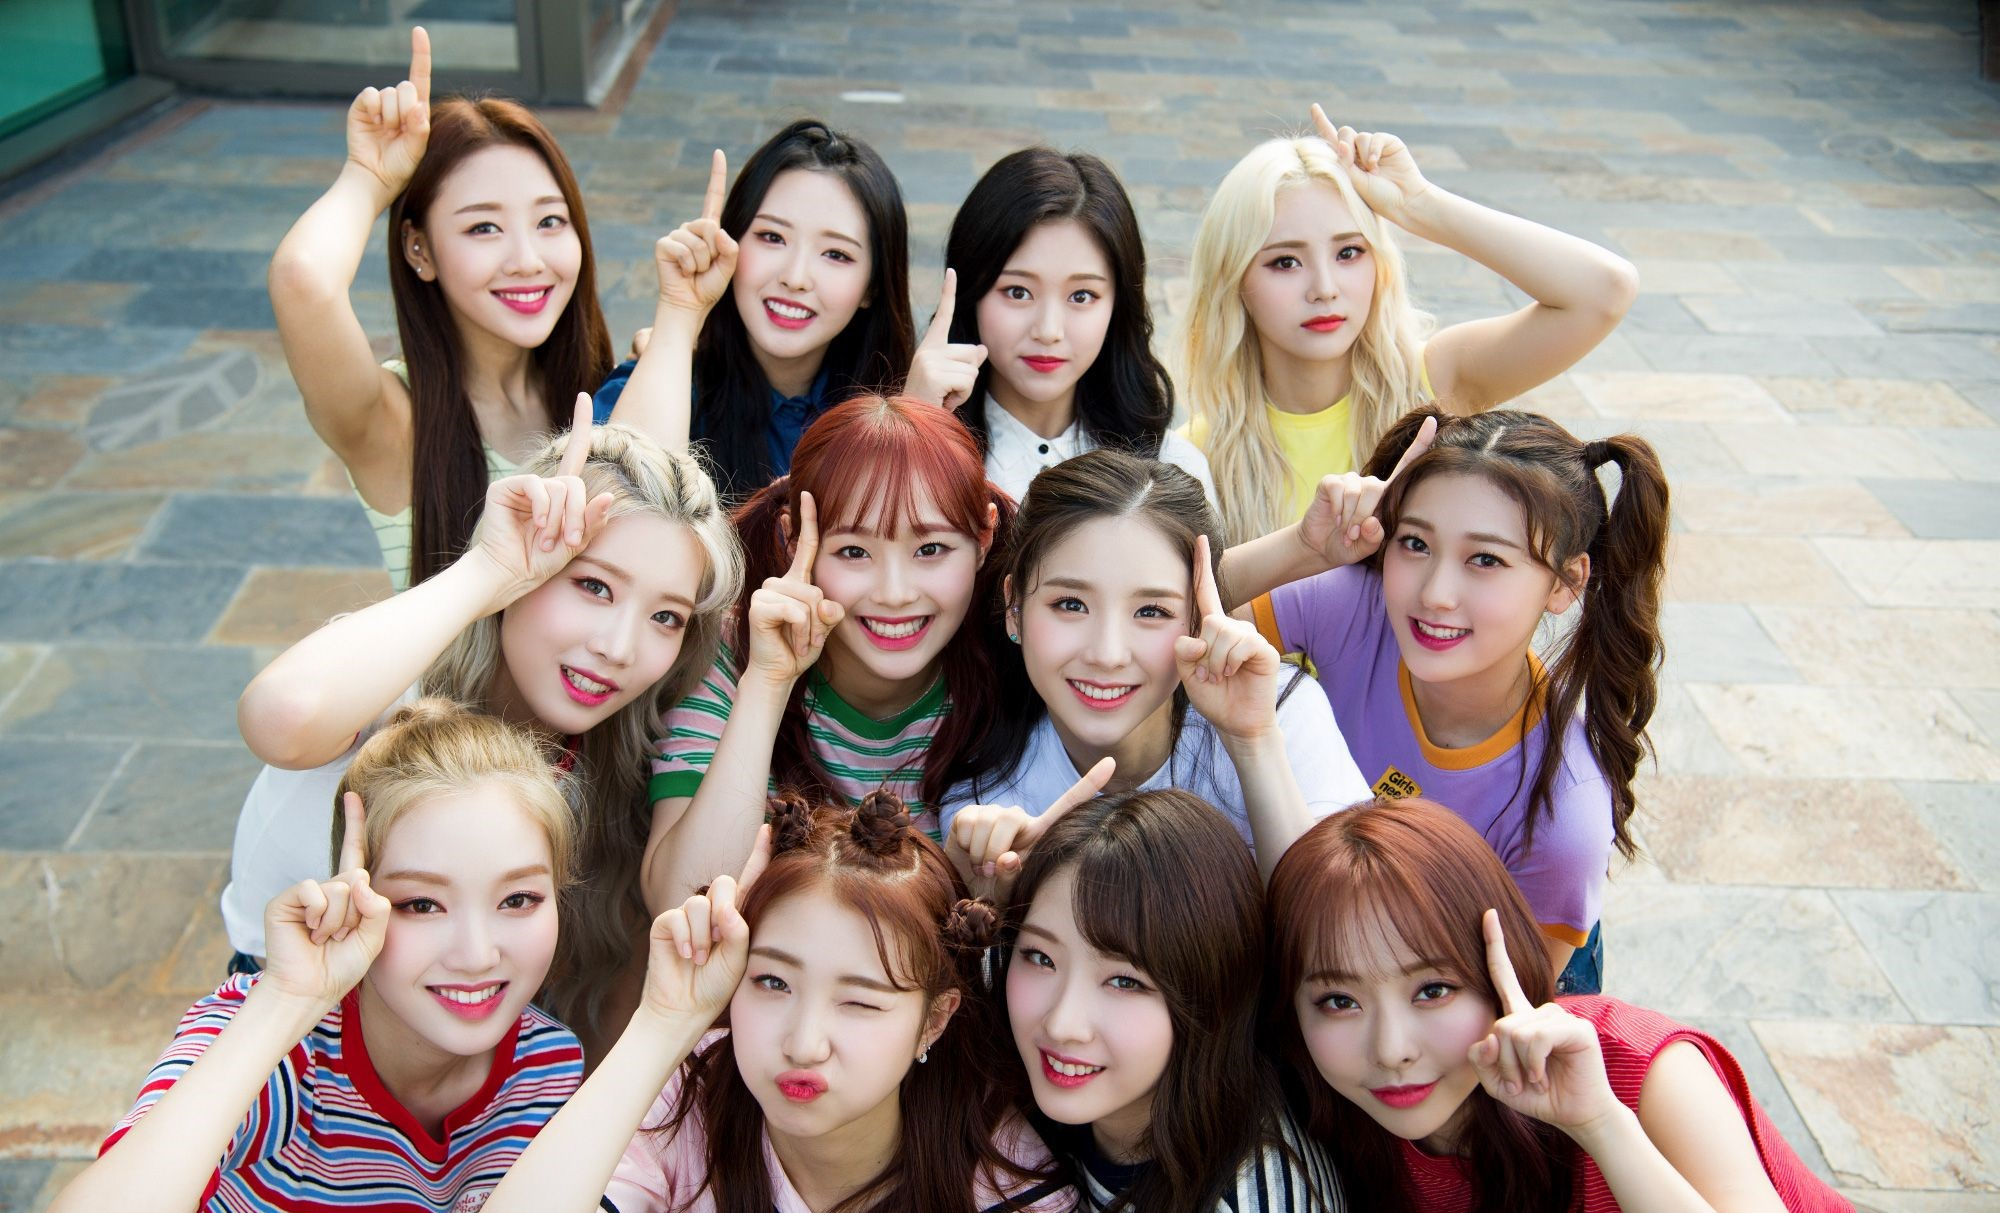 Quiz: Get to Know LOONA (Becoming Orbit)